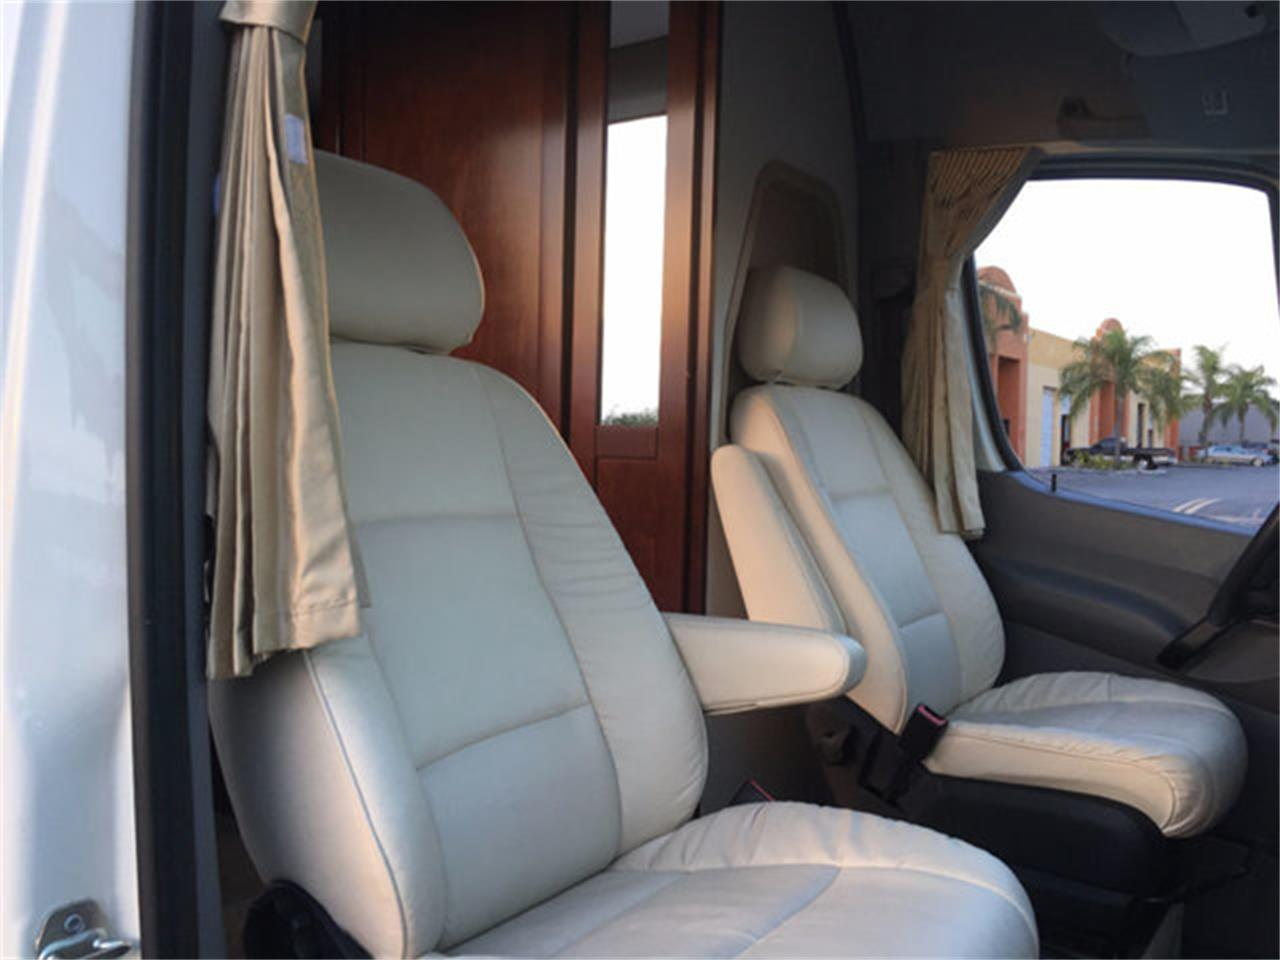 Large Picture of 2013 Mercedes-Benz Sprinter located in Florida - $89,500.00 - PQL3